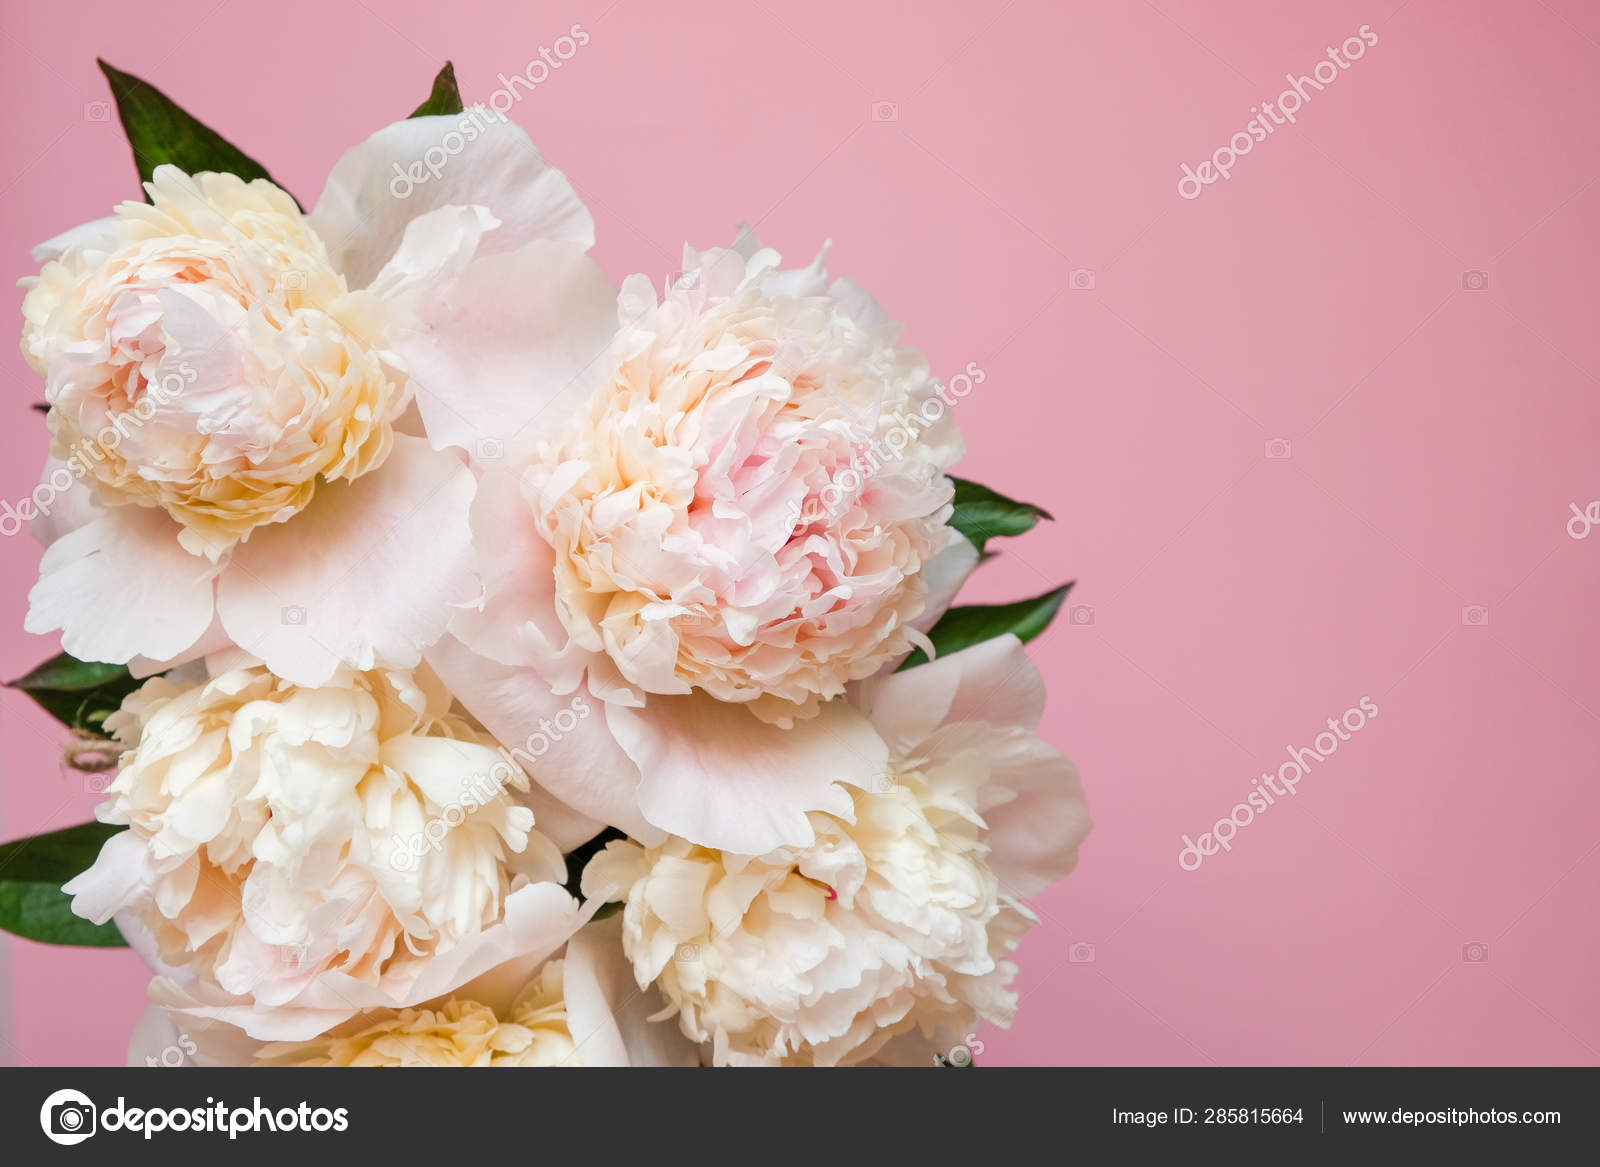 Beautiful White Peony Bouquet Close Up On Pink Background Top View Flat Lay Stock Photo C Photodiod Gmail Com 285815664